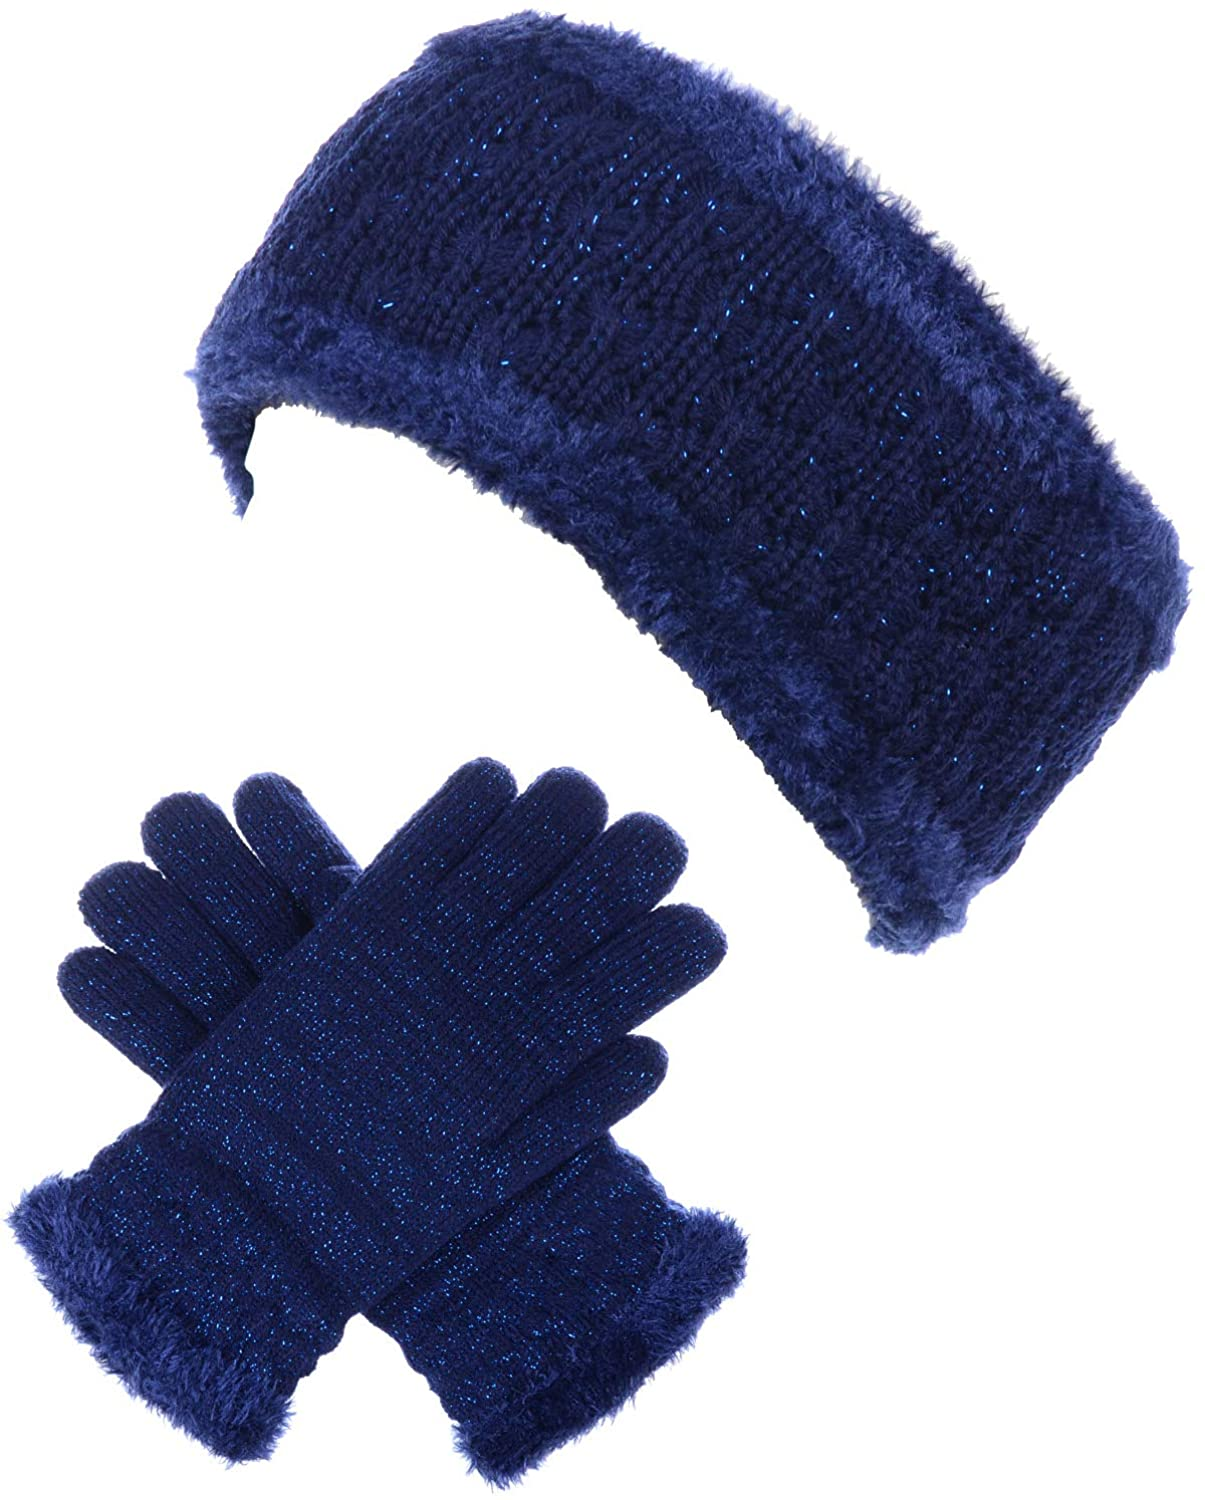 BYOS Womens Winter Cable Plush Warm Fleece Lined Knit Gloves & Headband 2 Pieces Set,Various Styles